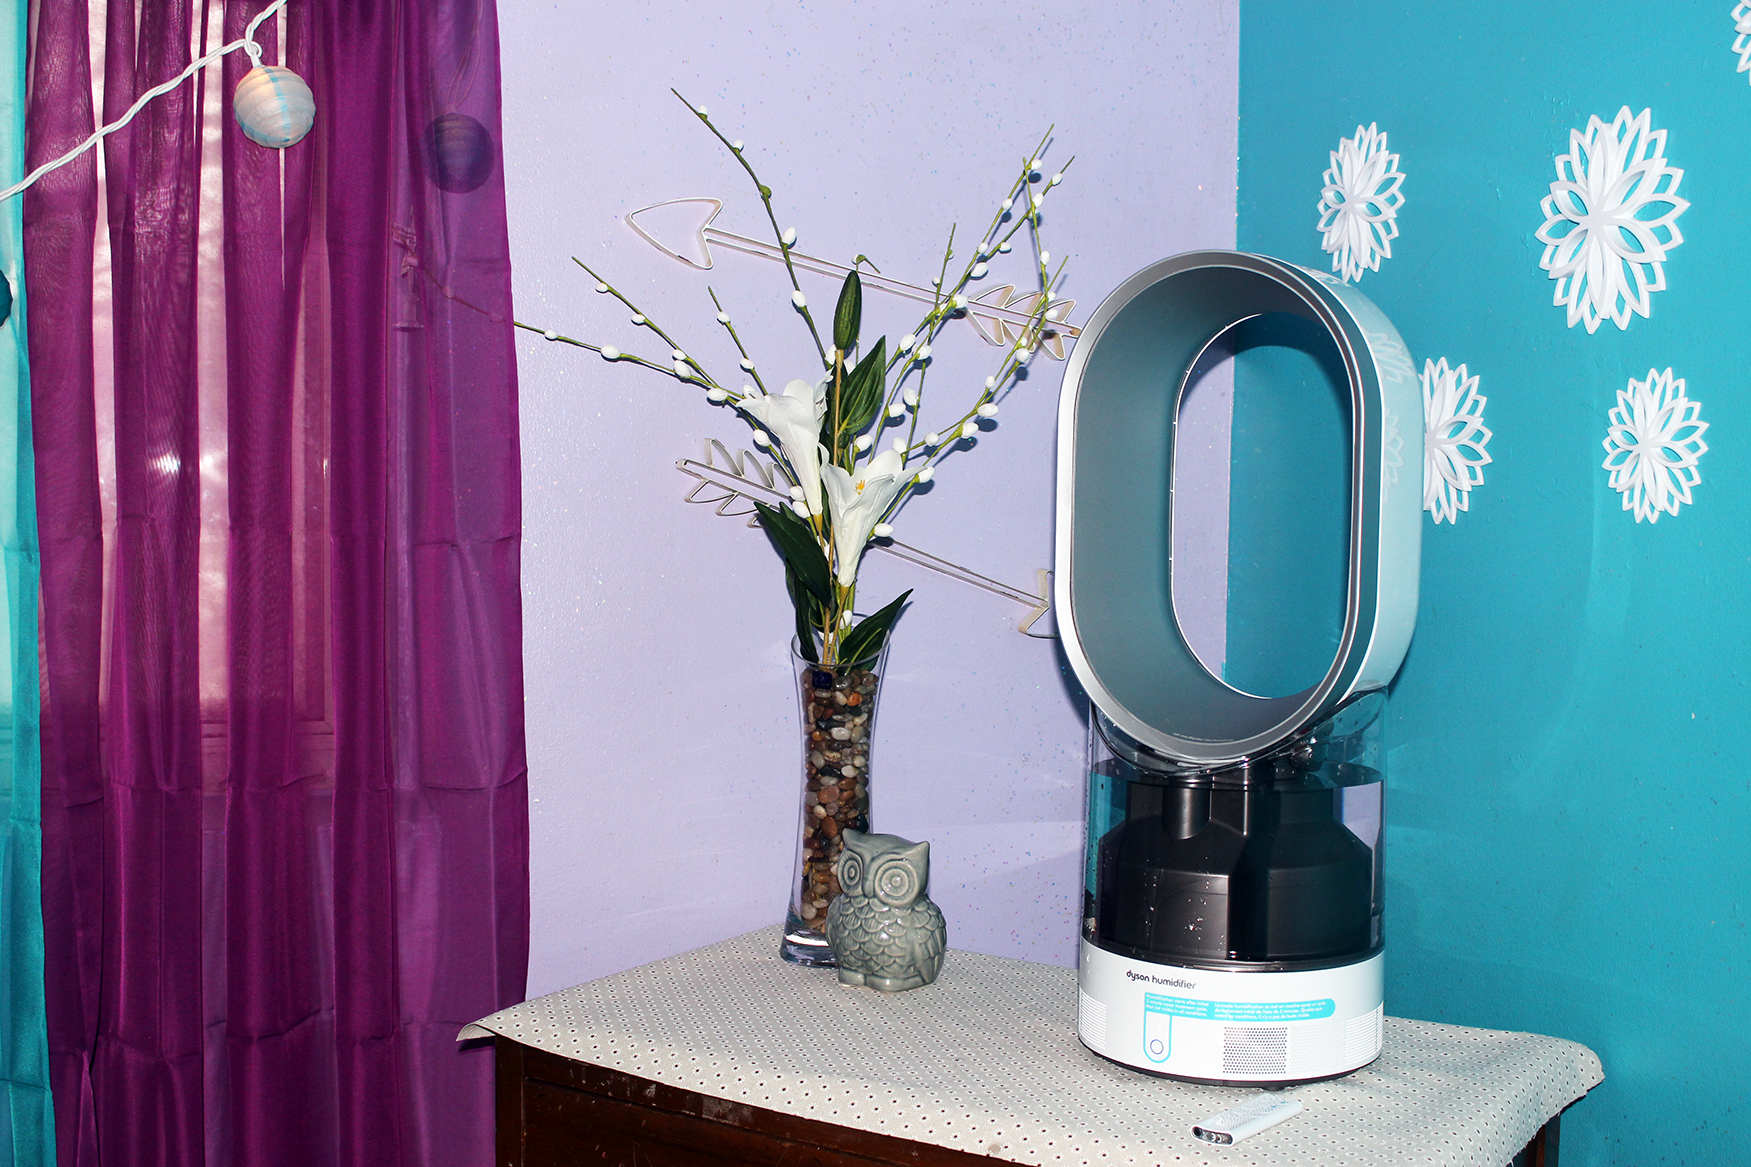 Dyson Humidifier: Hydrated Clean Air For The Whole Family